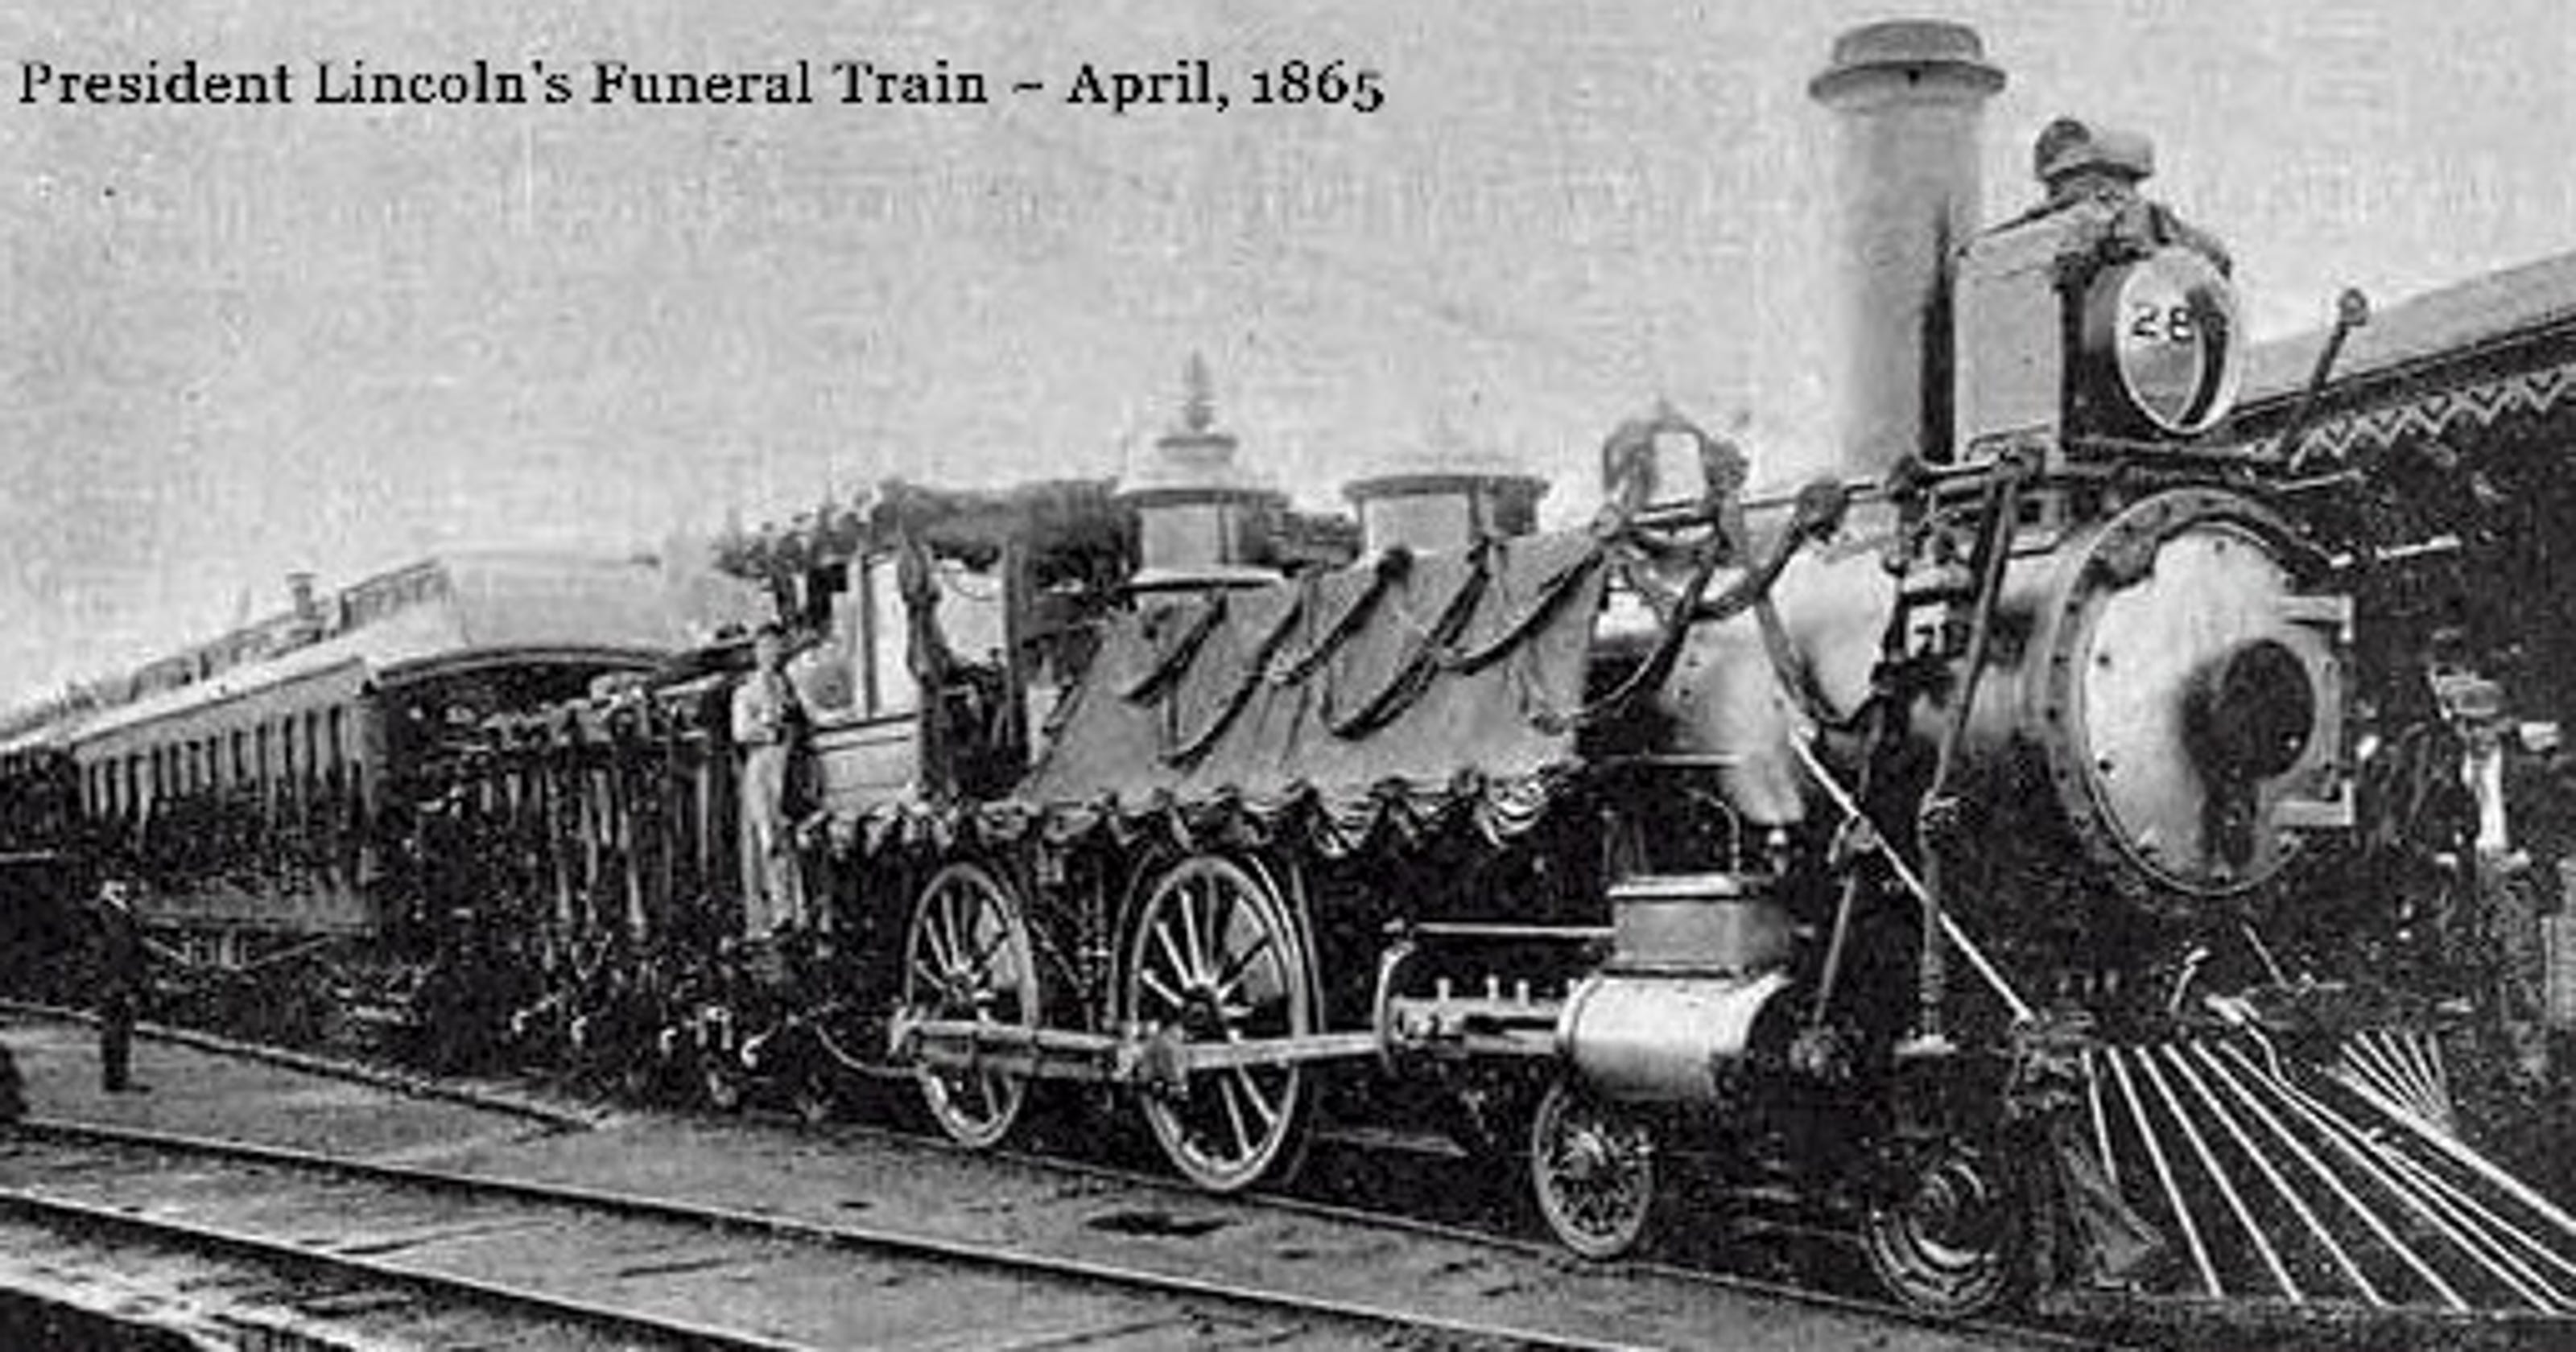 Out Of Our Past Crowds Gathered To Mourn At Lincoln S Funeral Train